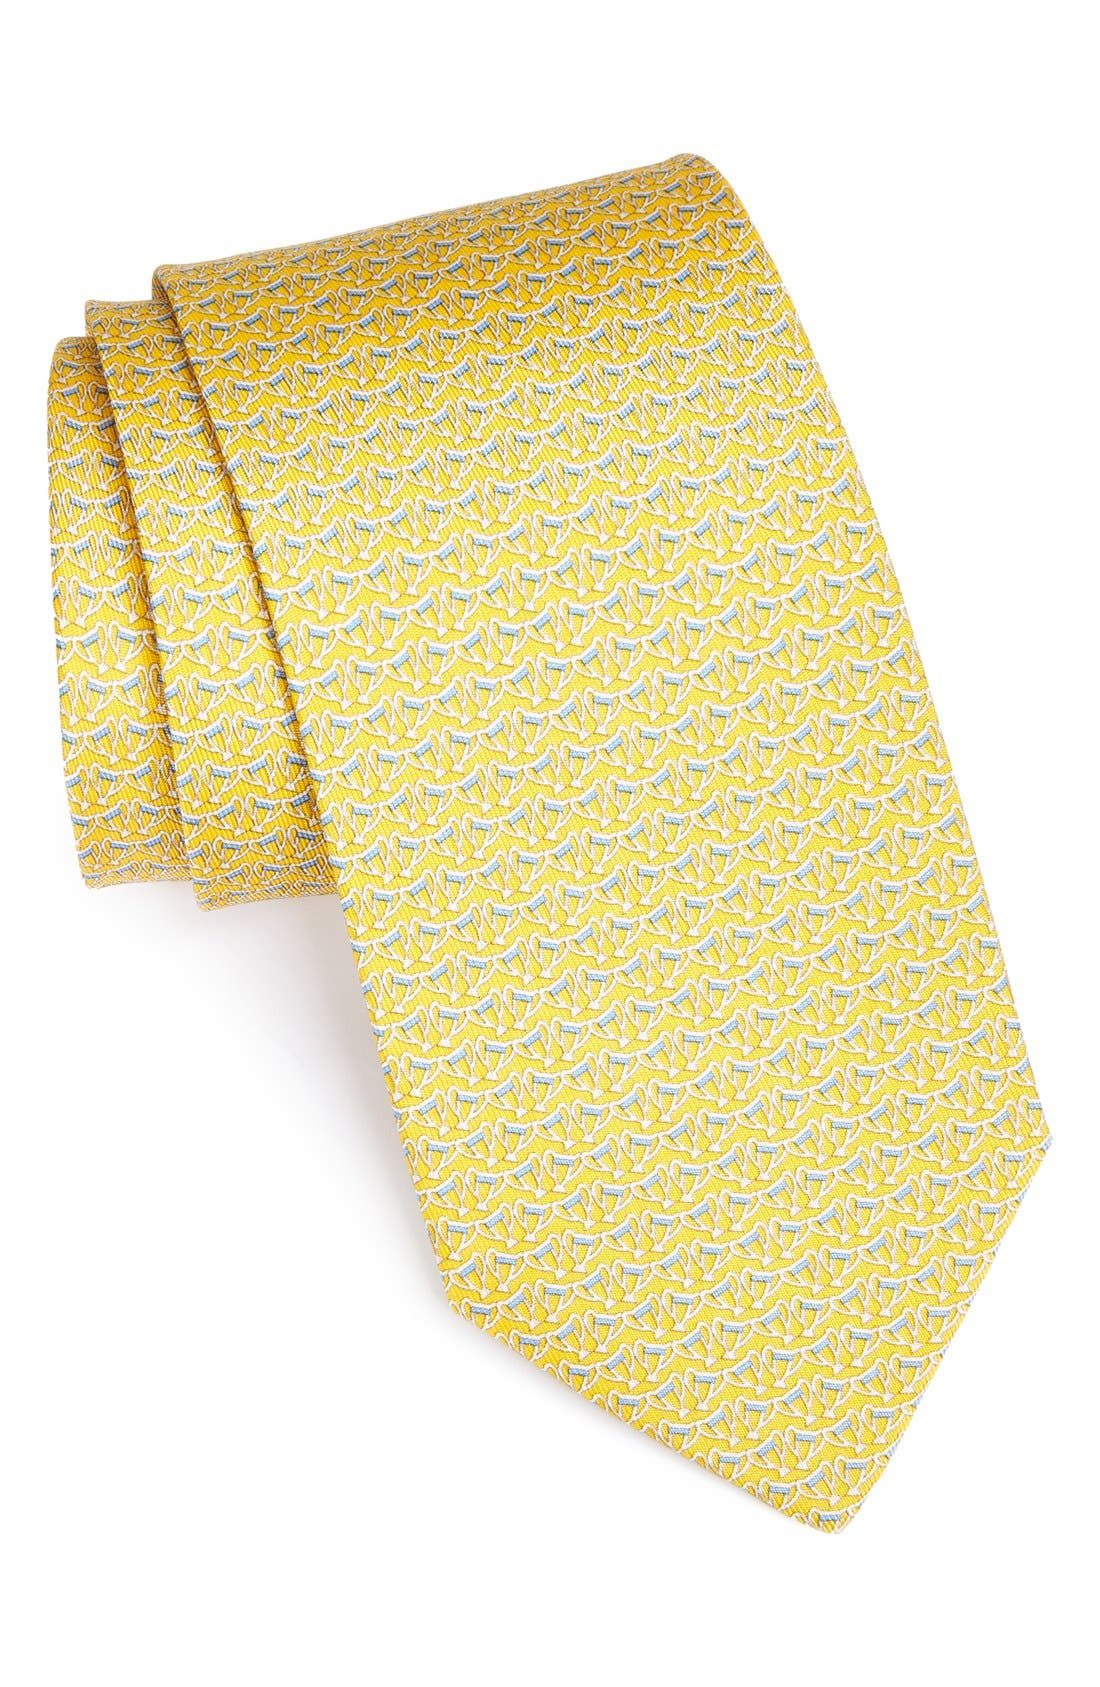 Alternate Image 1 Selected - Salvatore Ferragamo Cup Print Tie